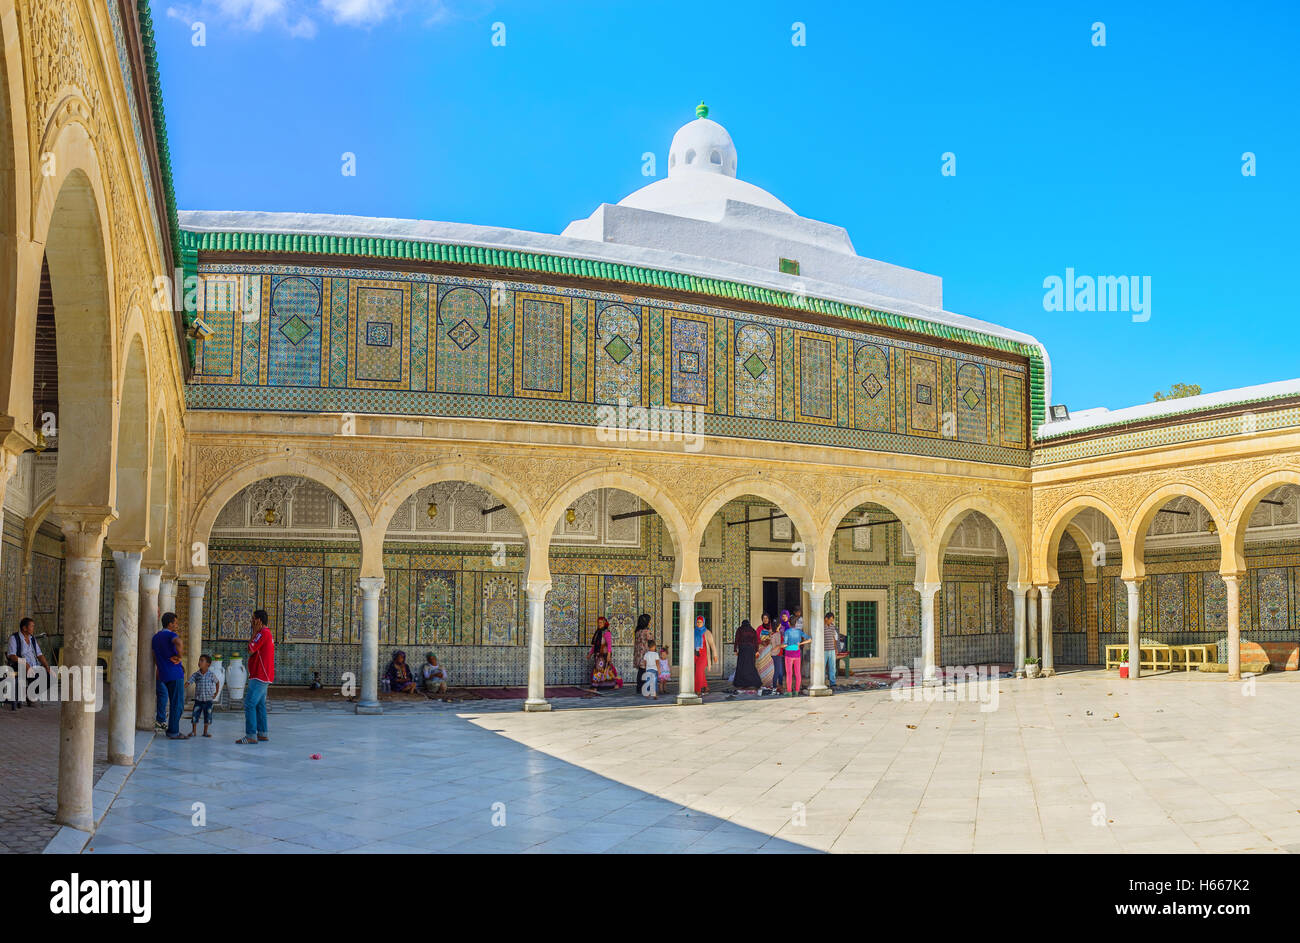 The richly decorated courtyard leads to the prayer hall of the Barber's Mosque, Kairouan Tunisia - Stock Image